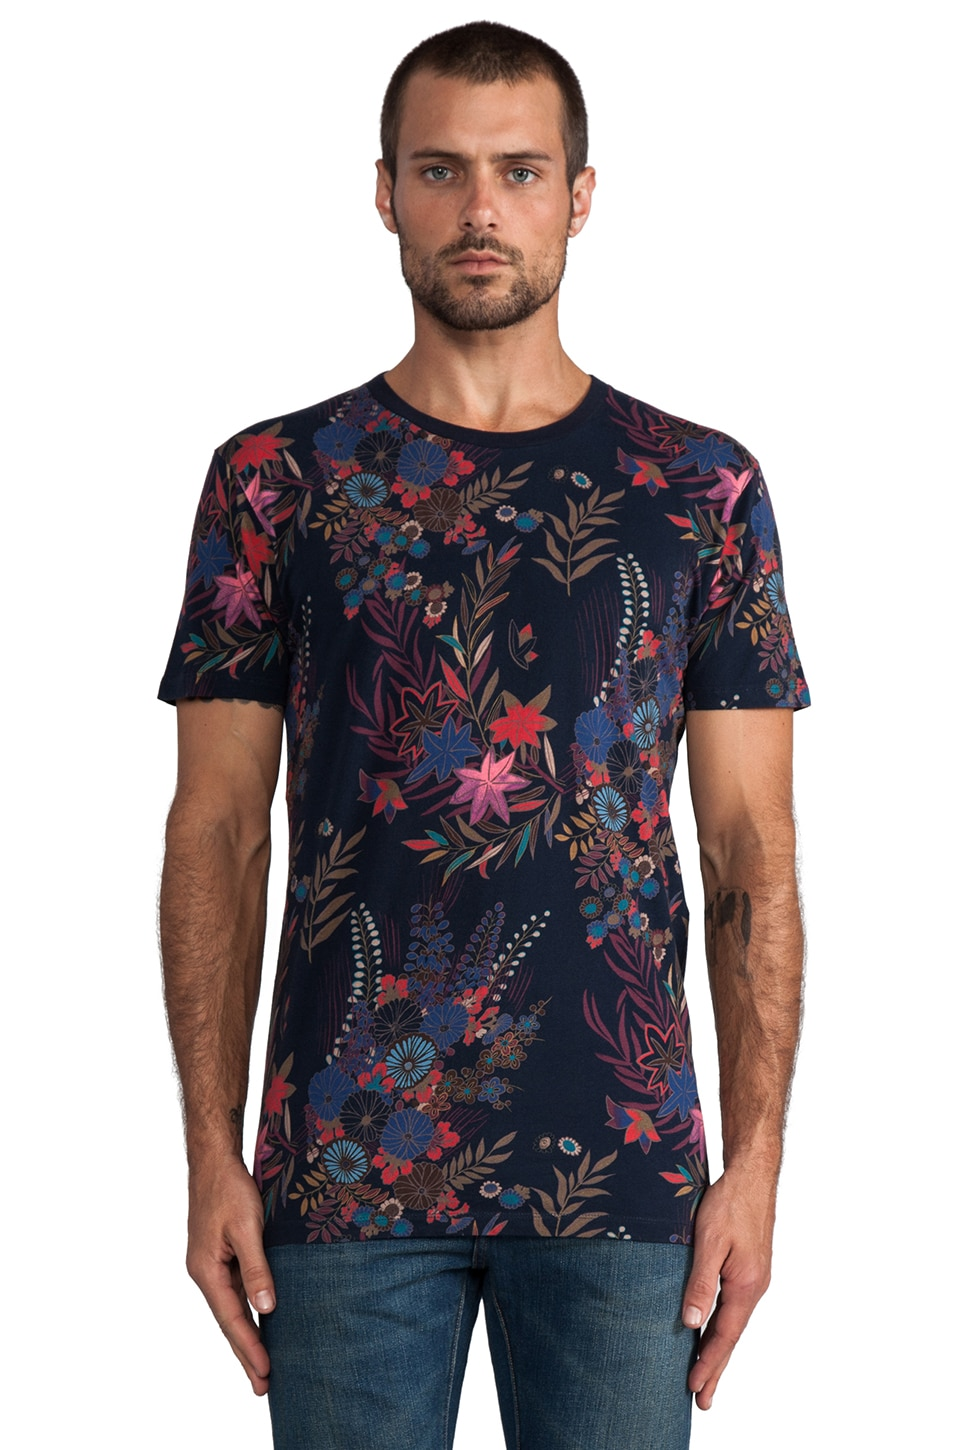 Marc by Marc Jacobs Wichita Floral Jersey Tee in Total Eclipse Multi